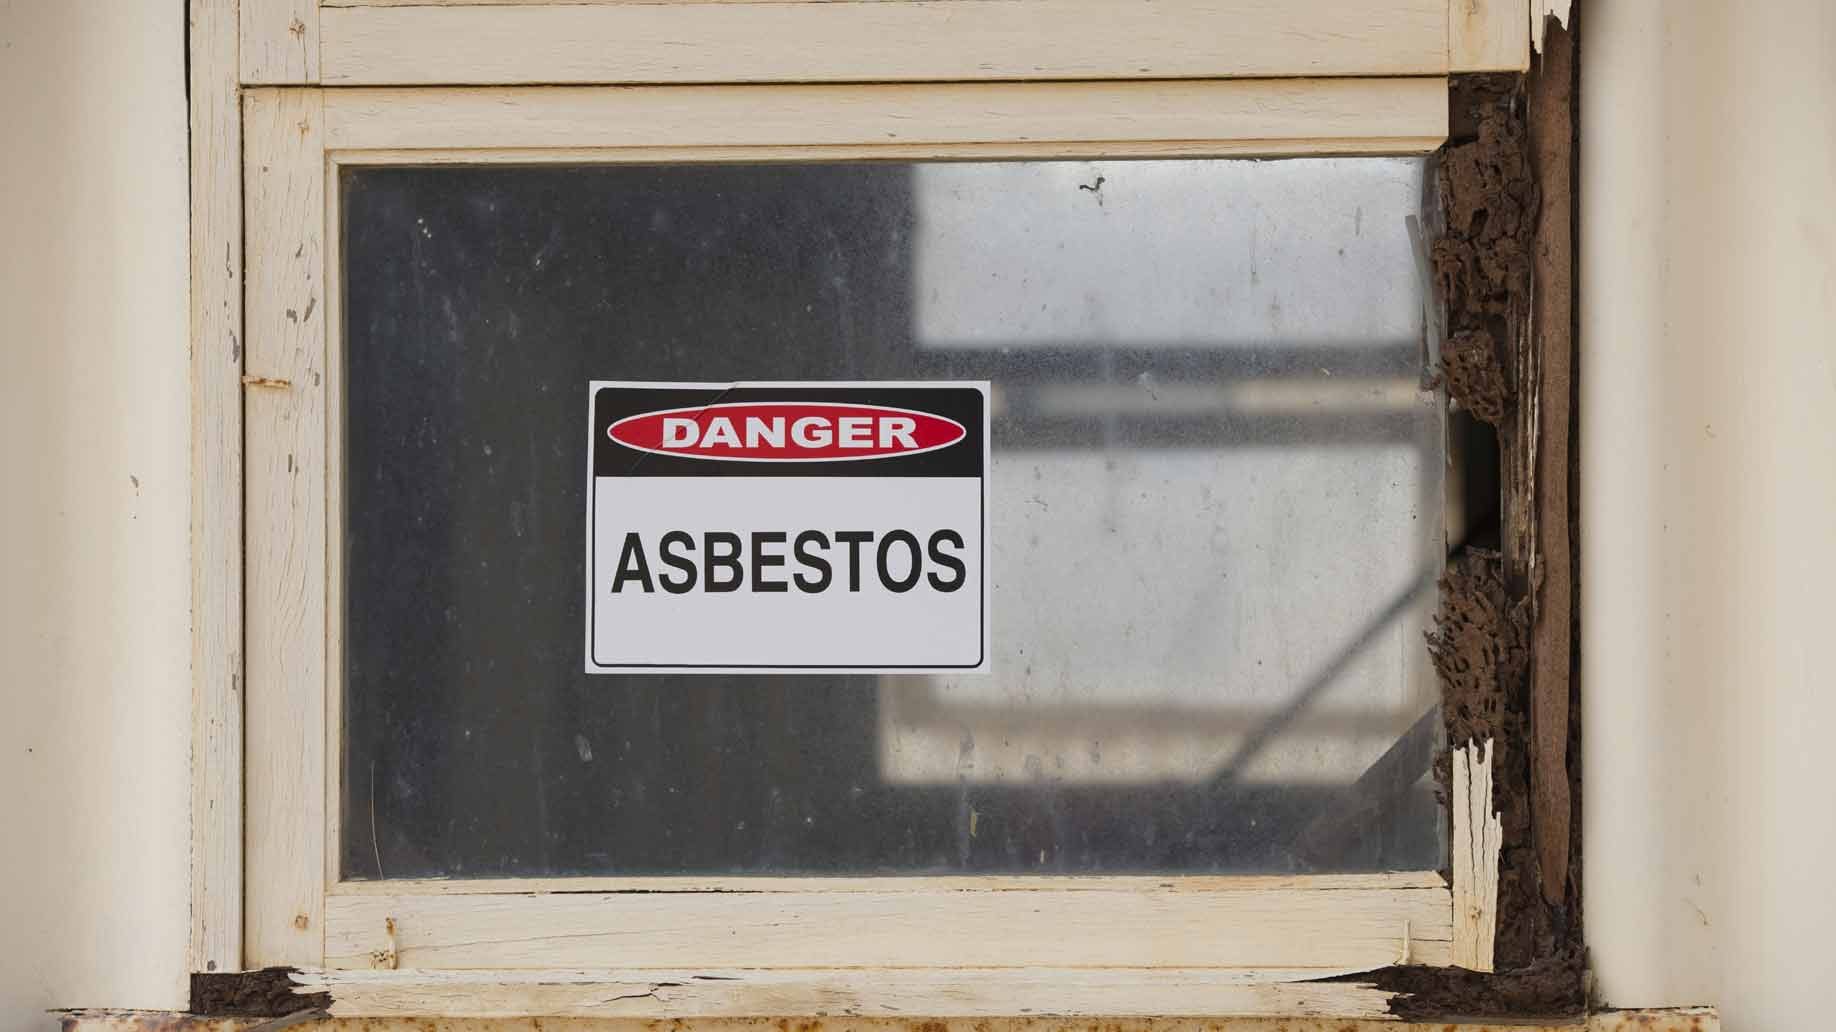 old house with asbestos warning in window